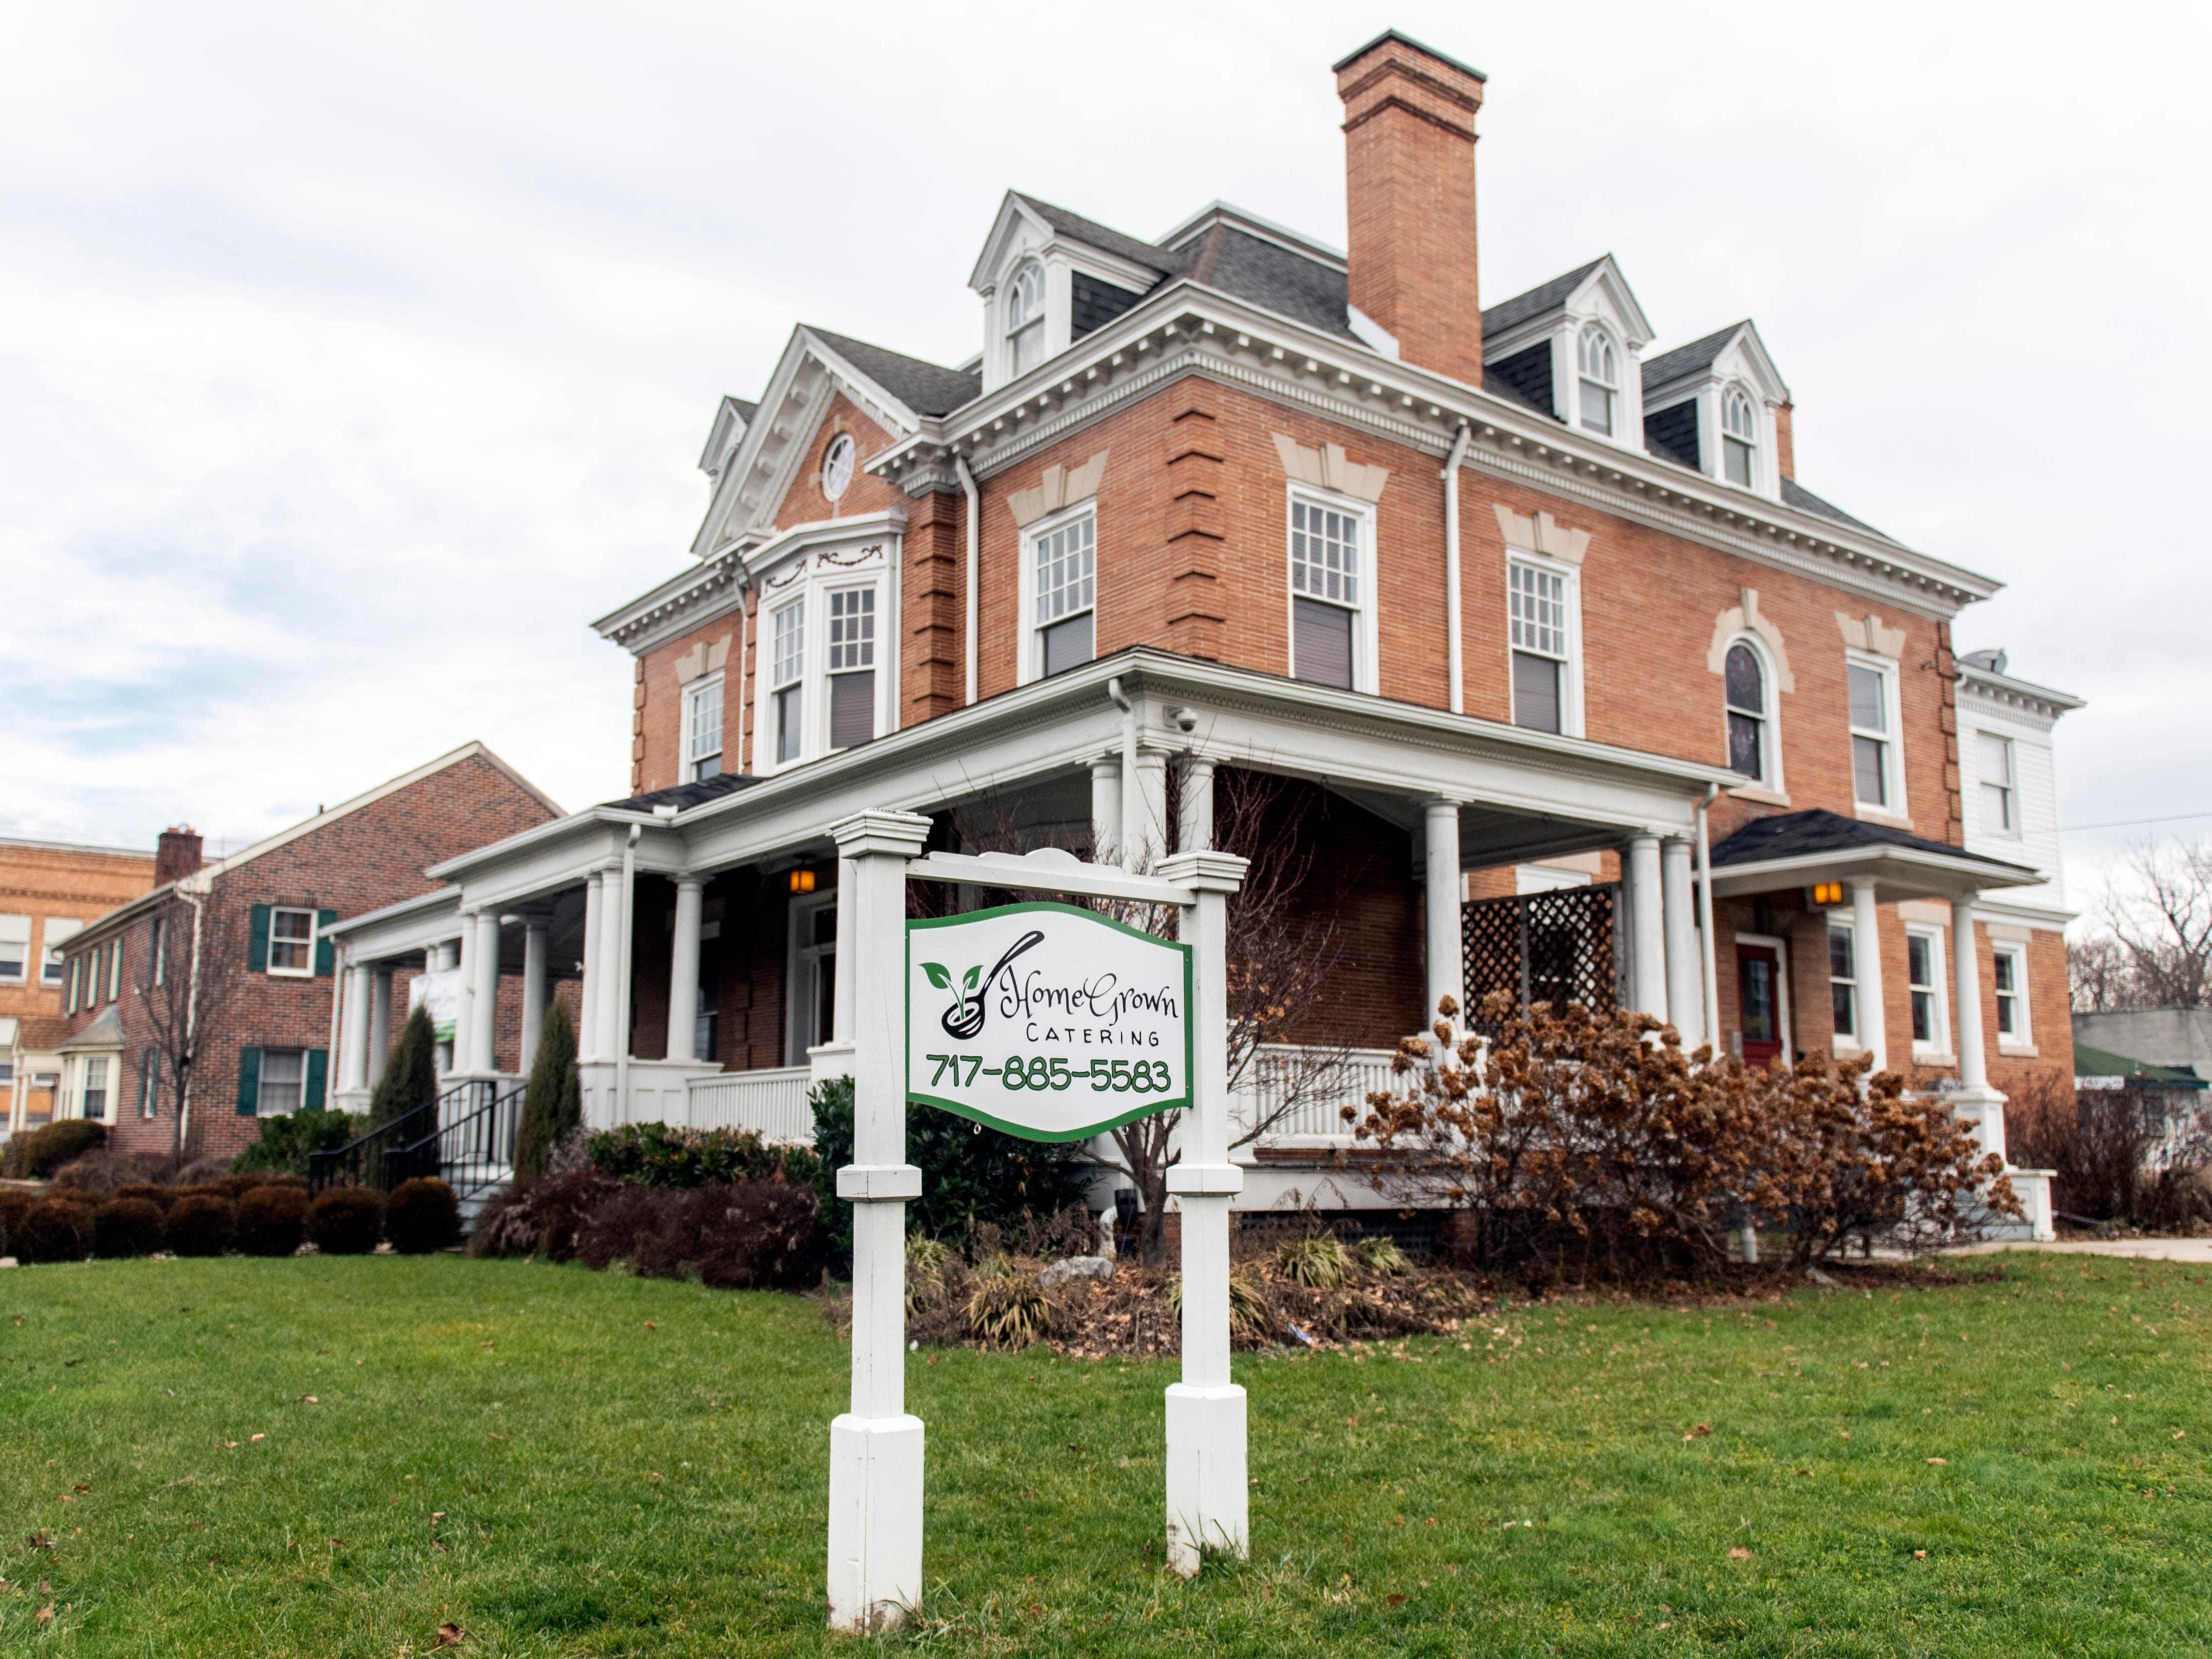 HomeGrown Catering, which operates out of the historic Frey Mansion in York, is a new restaurant set to open Jan. 10.  It will American-style menu with a French twist. It's also BYOB.